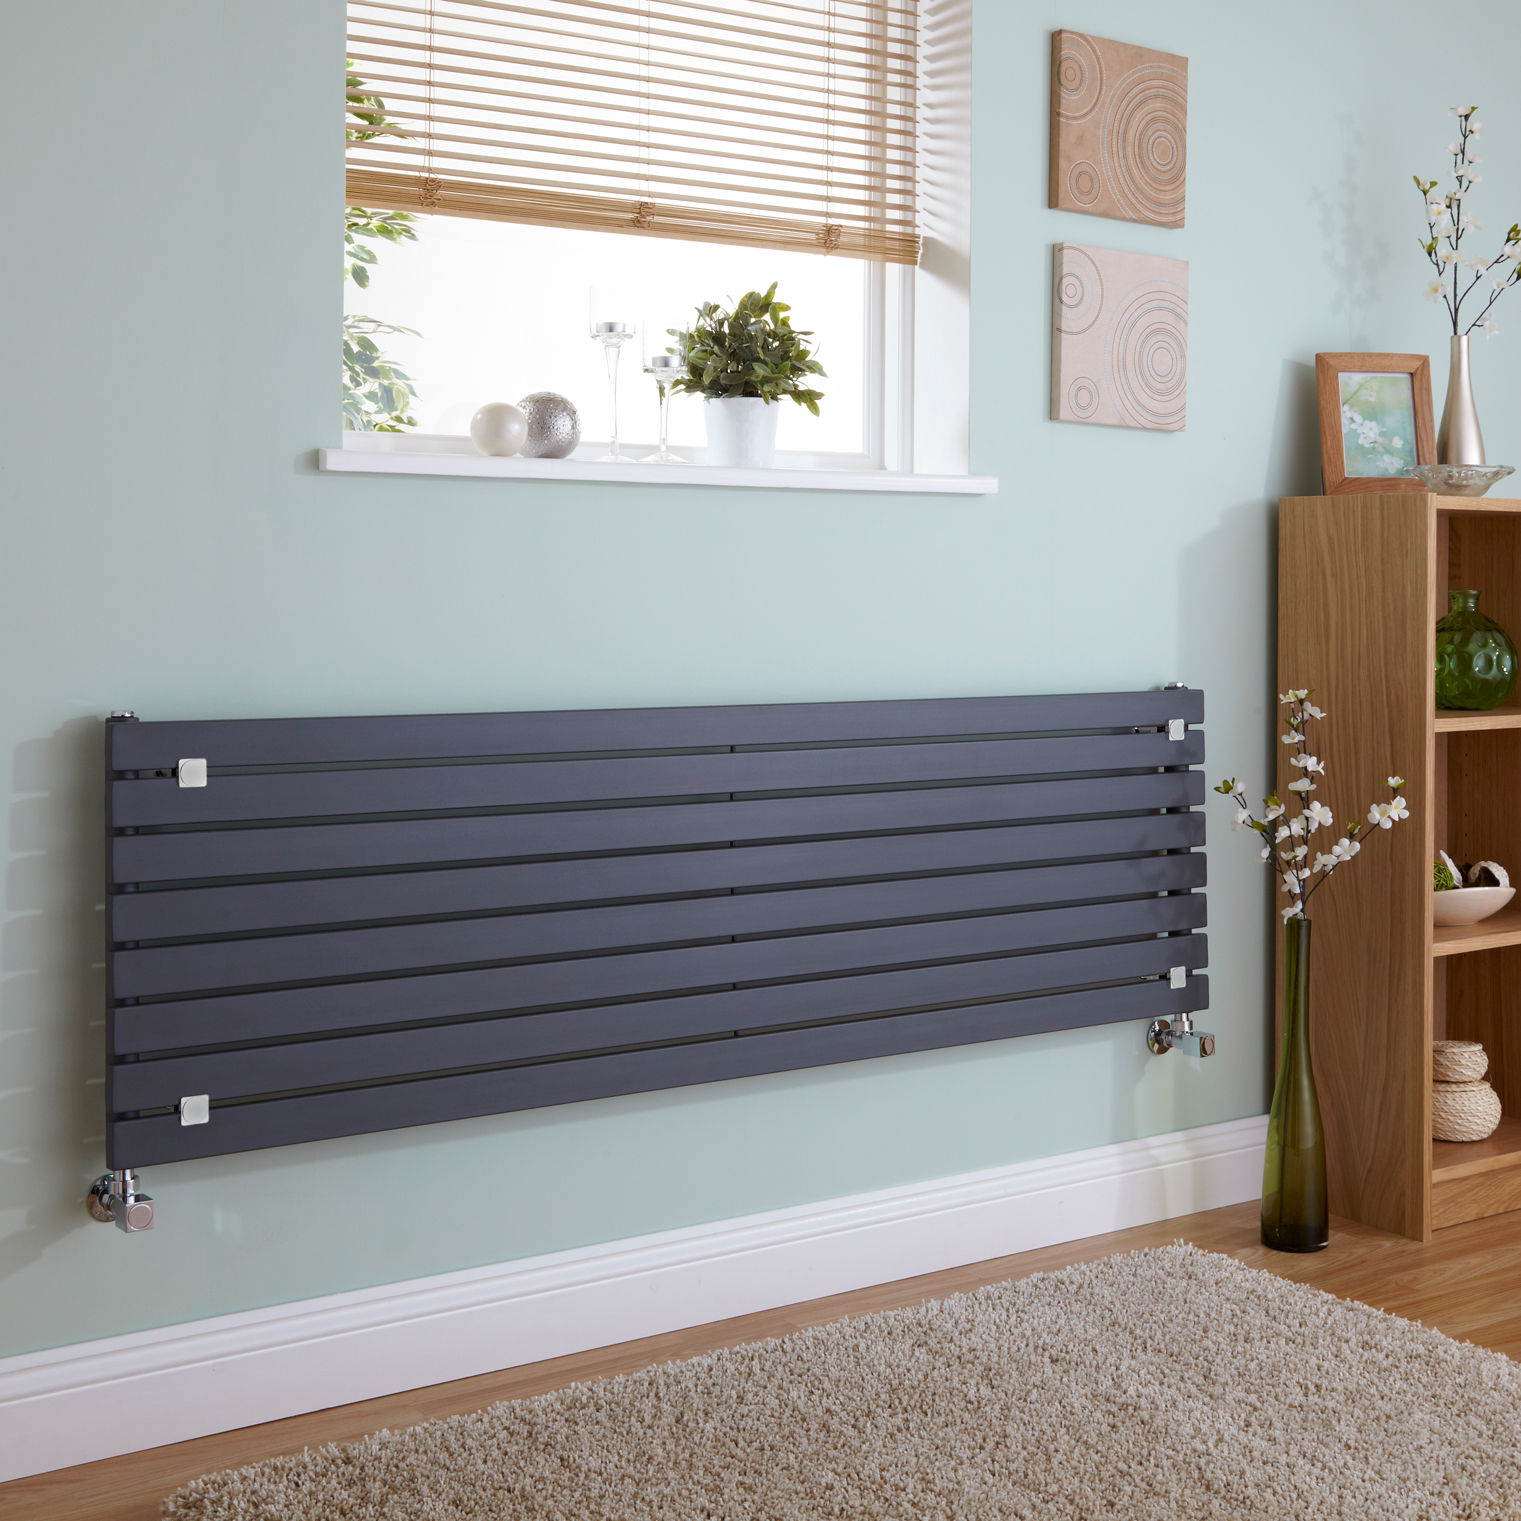 Milano Capri - Anthracite Horizontal Flat Panel Designer Radiator 472mm x 1600mm